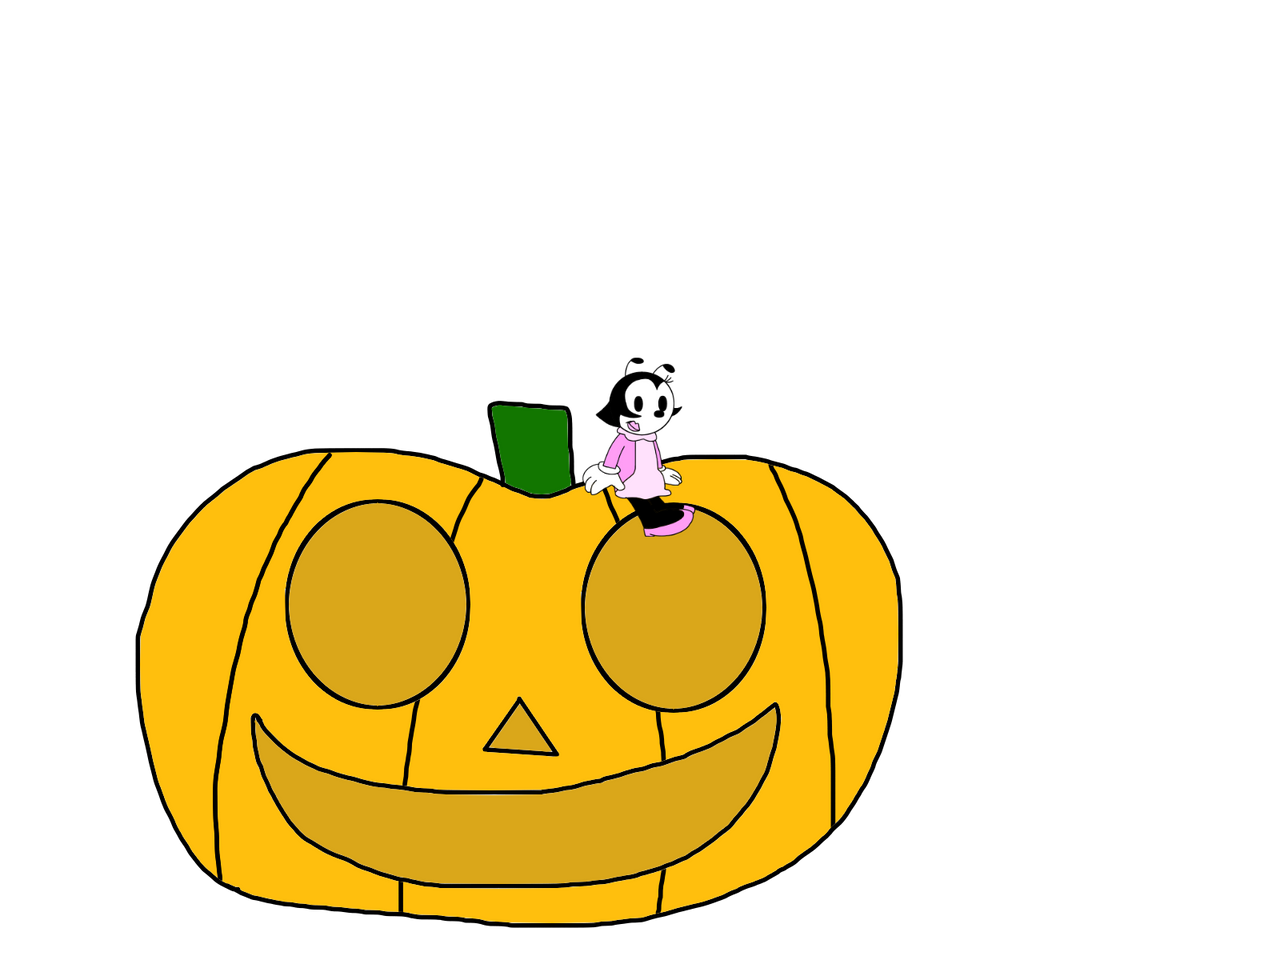 June Bug with a pumpkin by MarcosPower1996 on DeviantArt